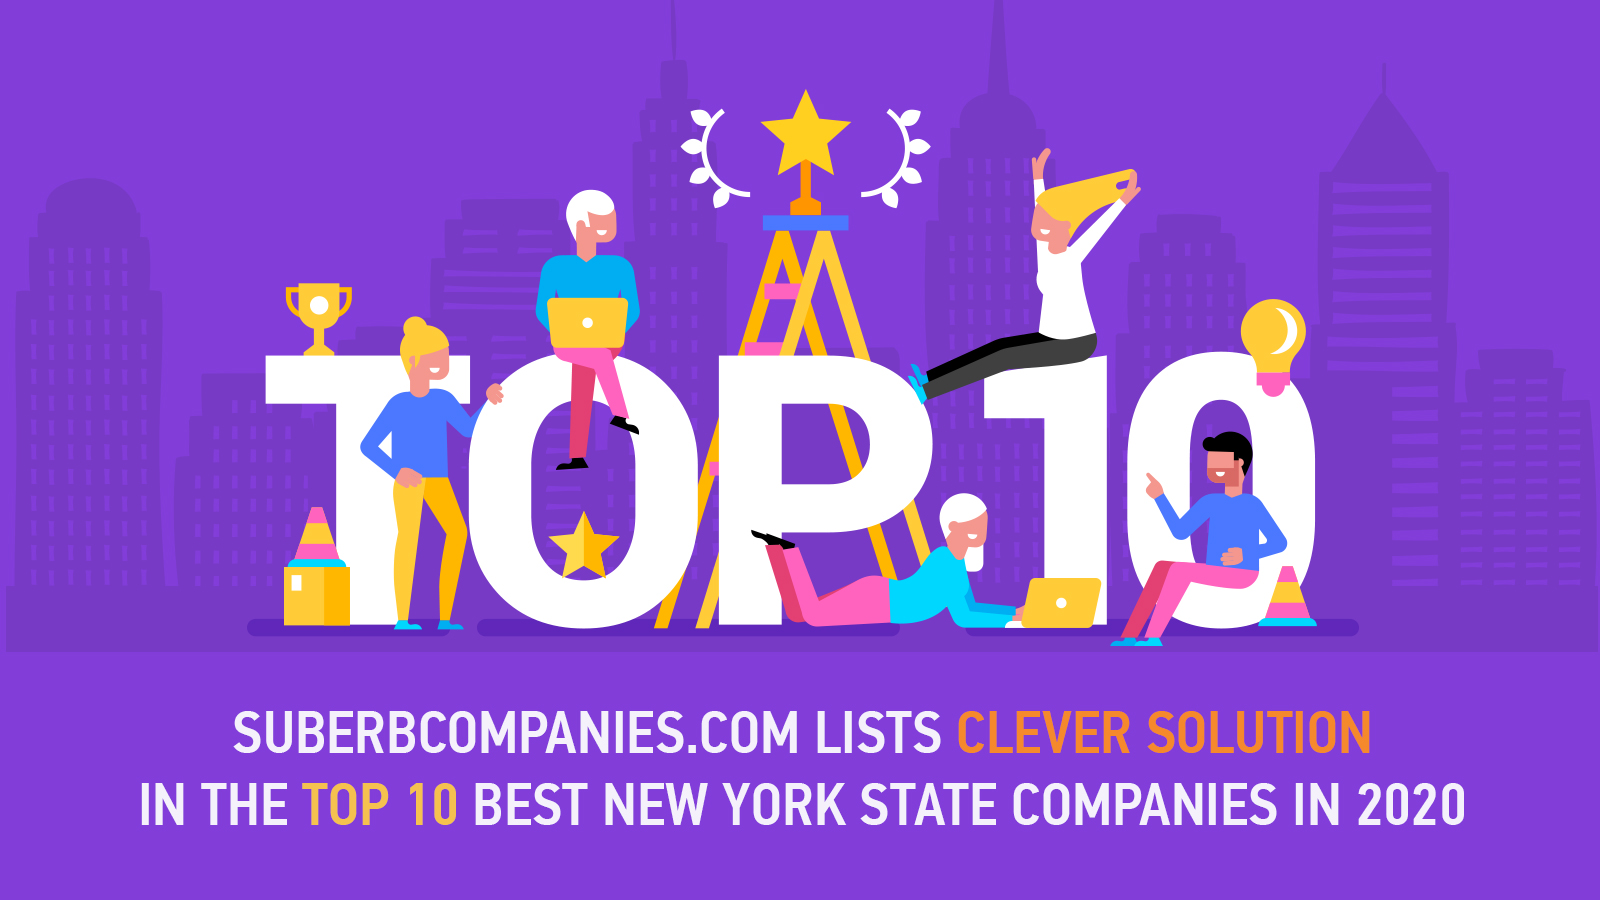 Superbcompanies.com lists Clever Solution among the top 10 New York State companies in 2020